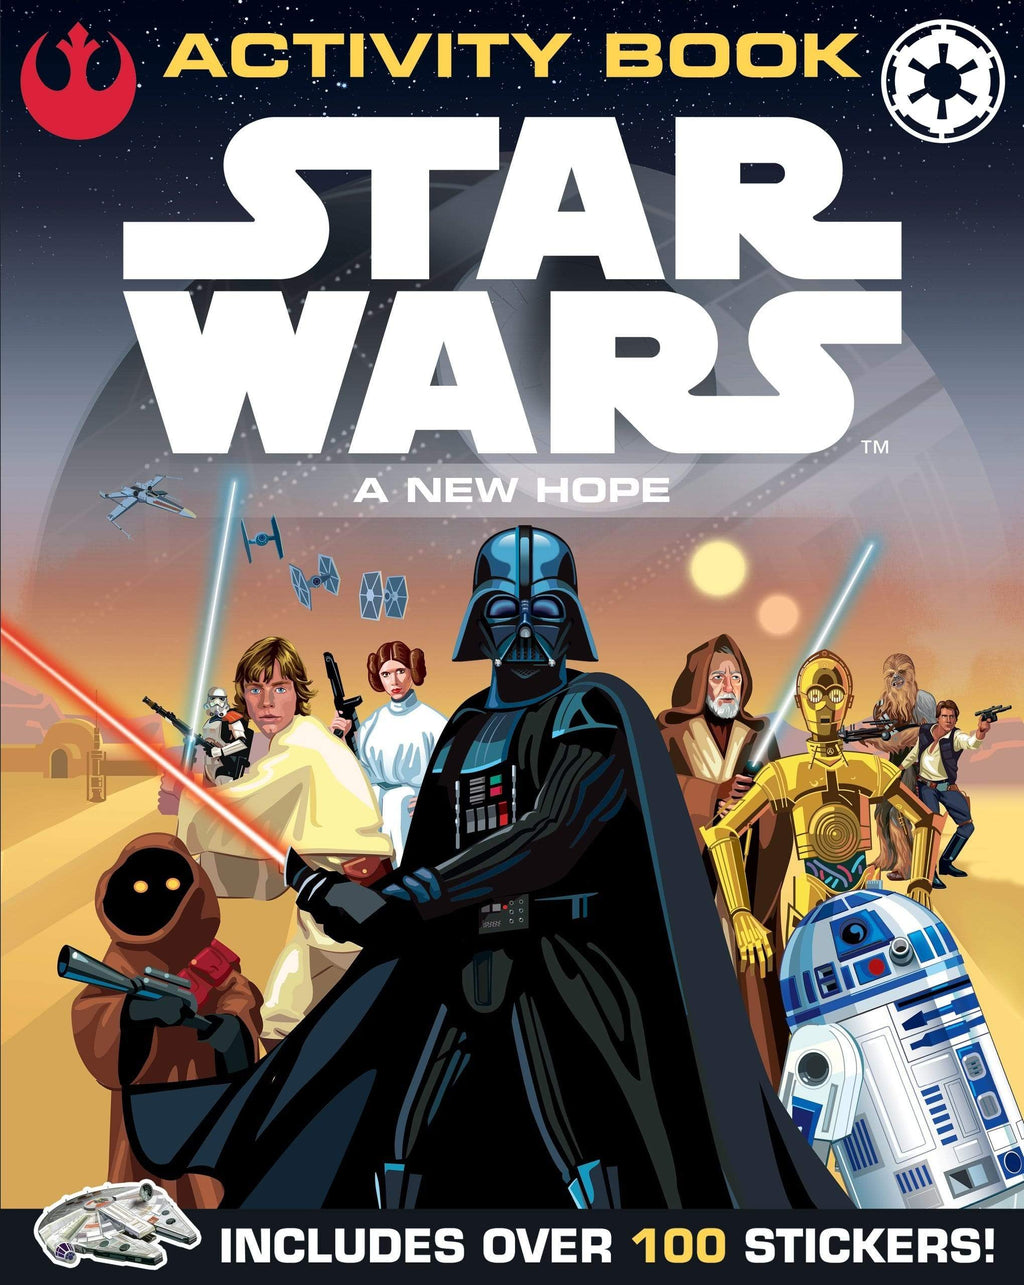 Marissa's Books & Gifts, LLC 9781405278959 Star Wars A New Hope Activity Book